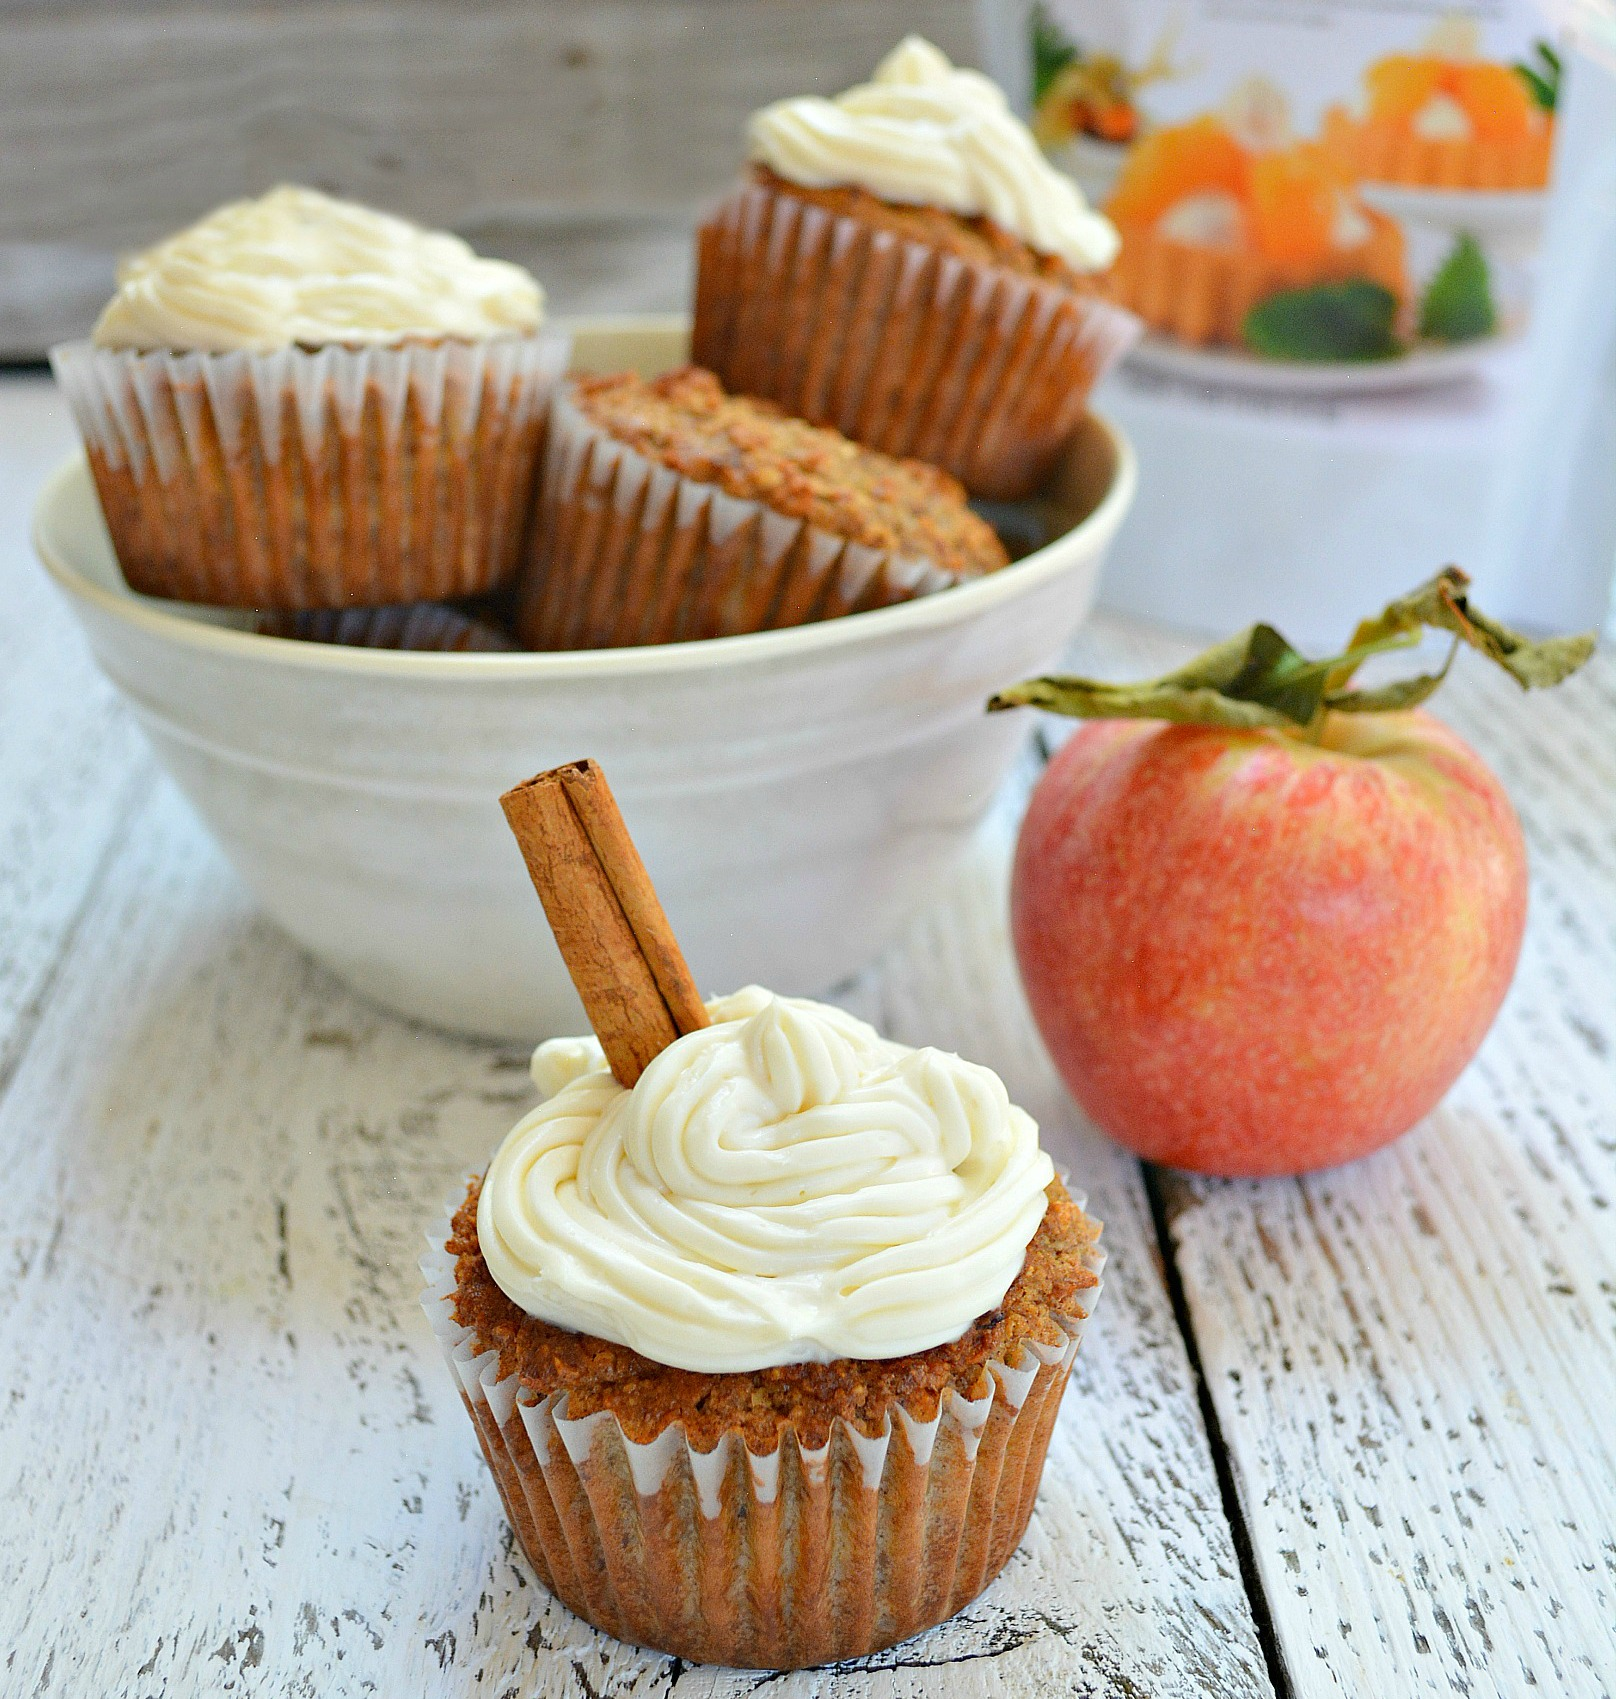 Apple Cinnamon Cupcakes with Cream Cheese Frosting